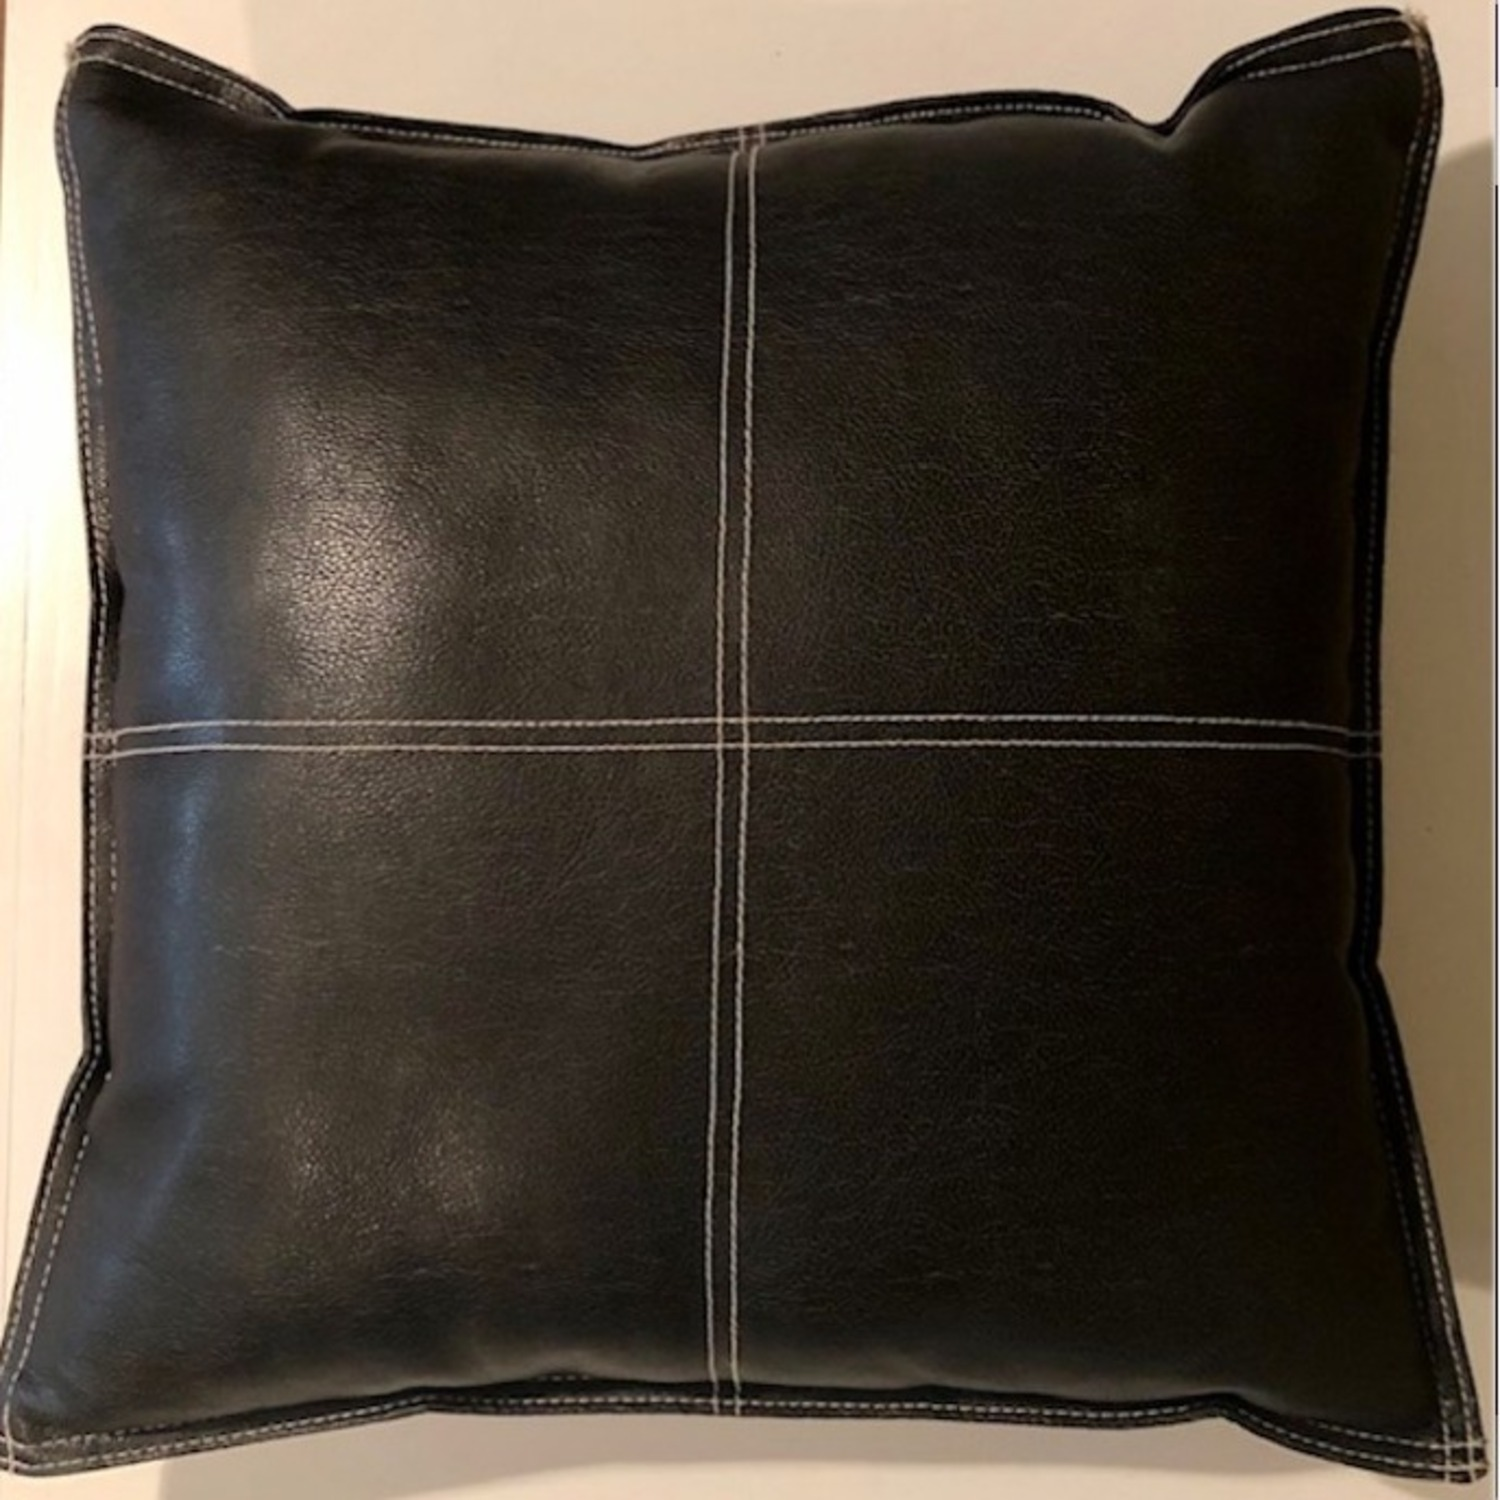 Black Leather Square Throw Pillow - image-4